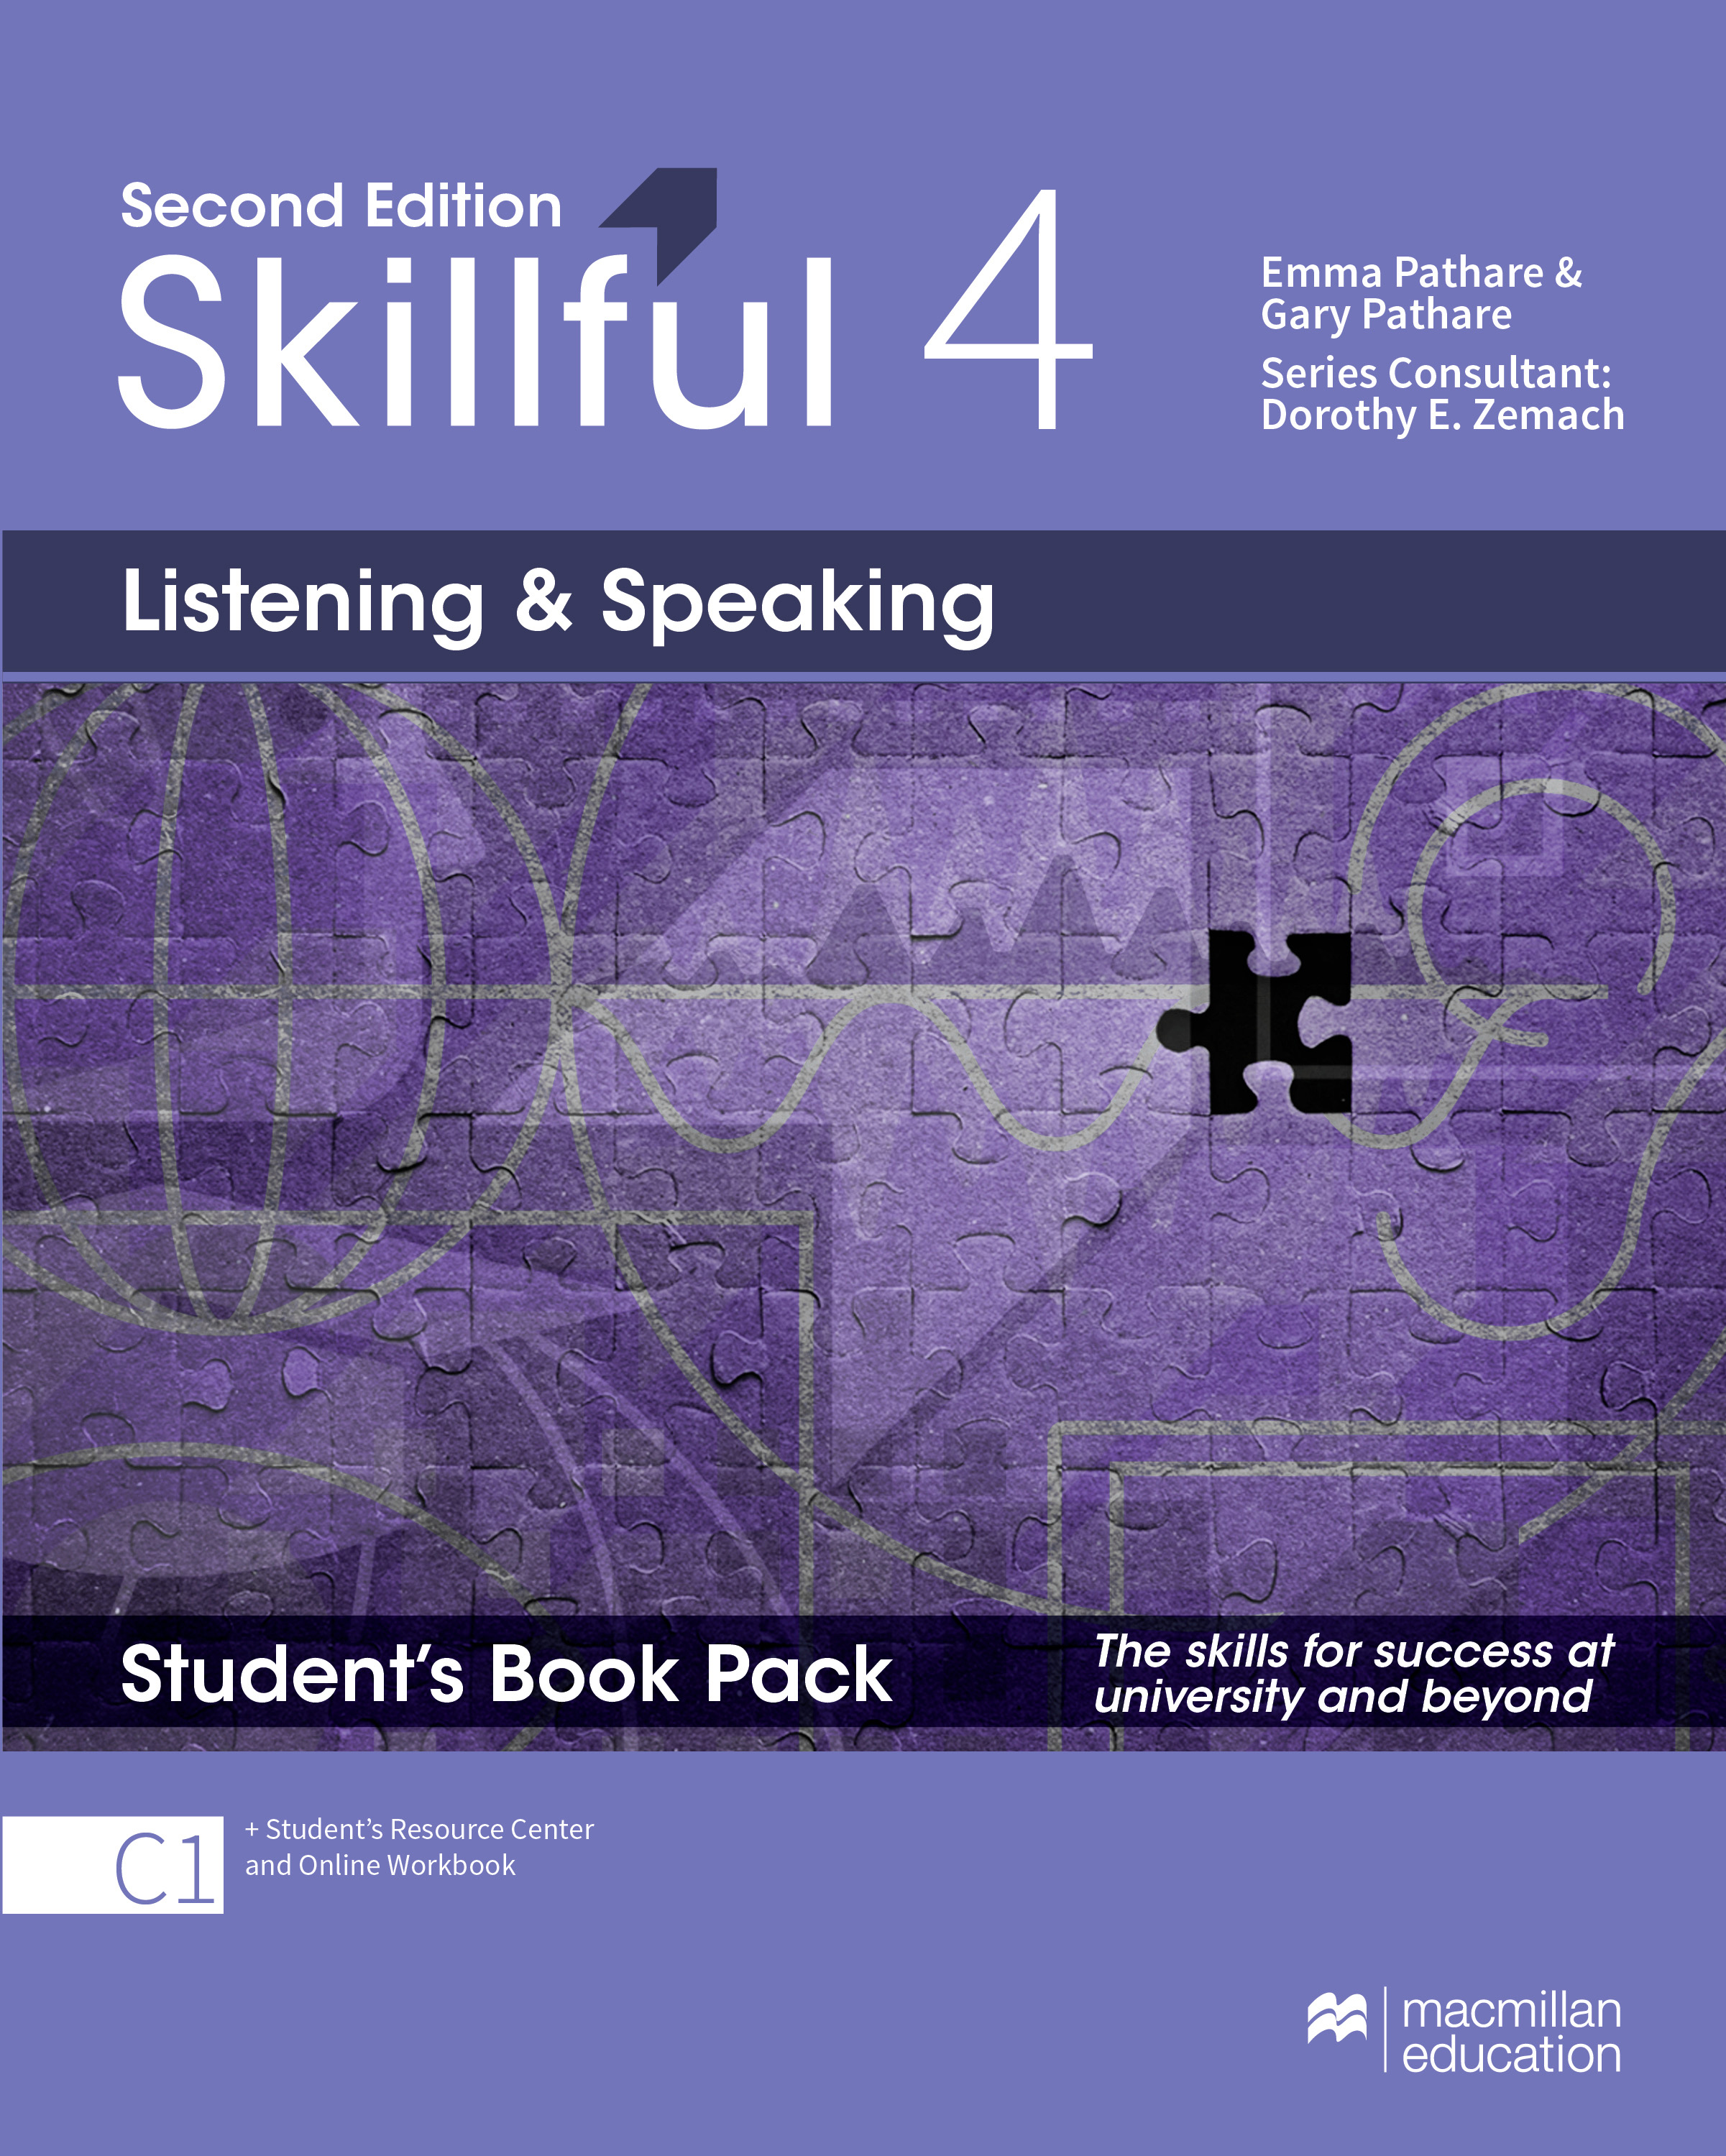 Skillful Second Edition Level 4 Listening and Speaking Premium Student